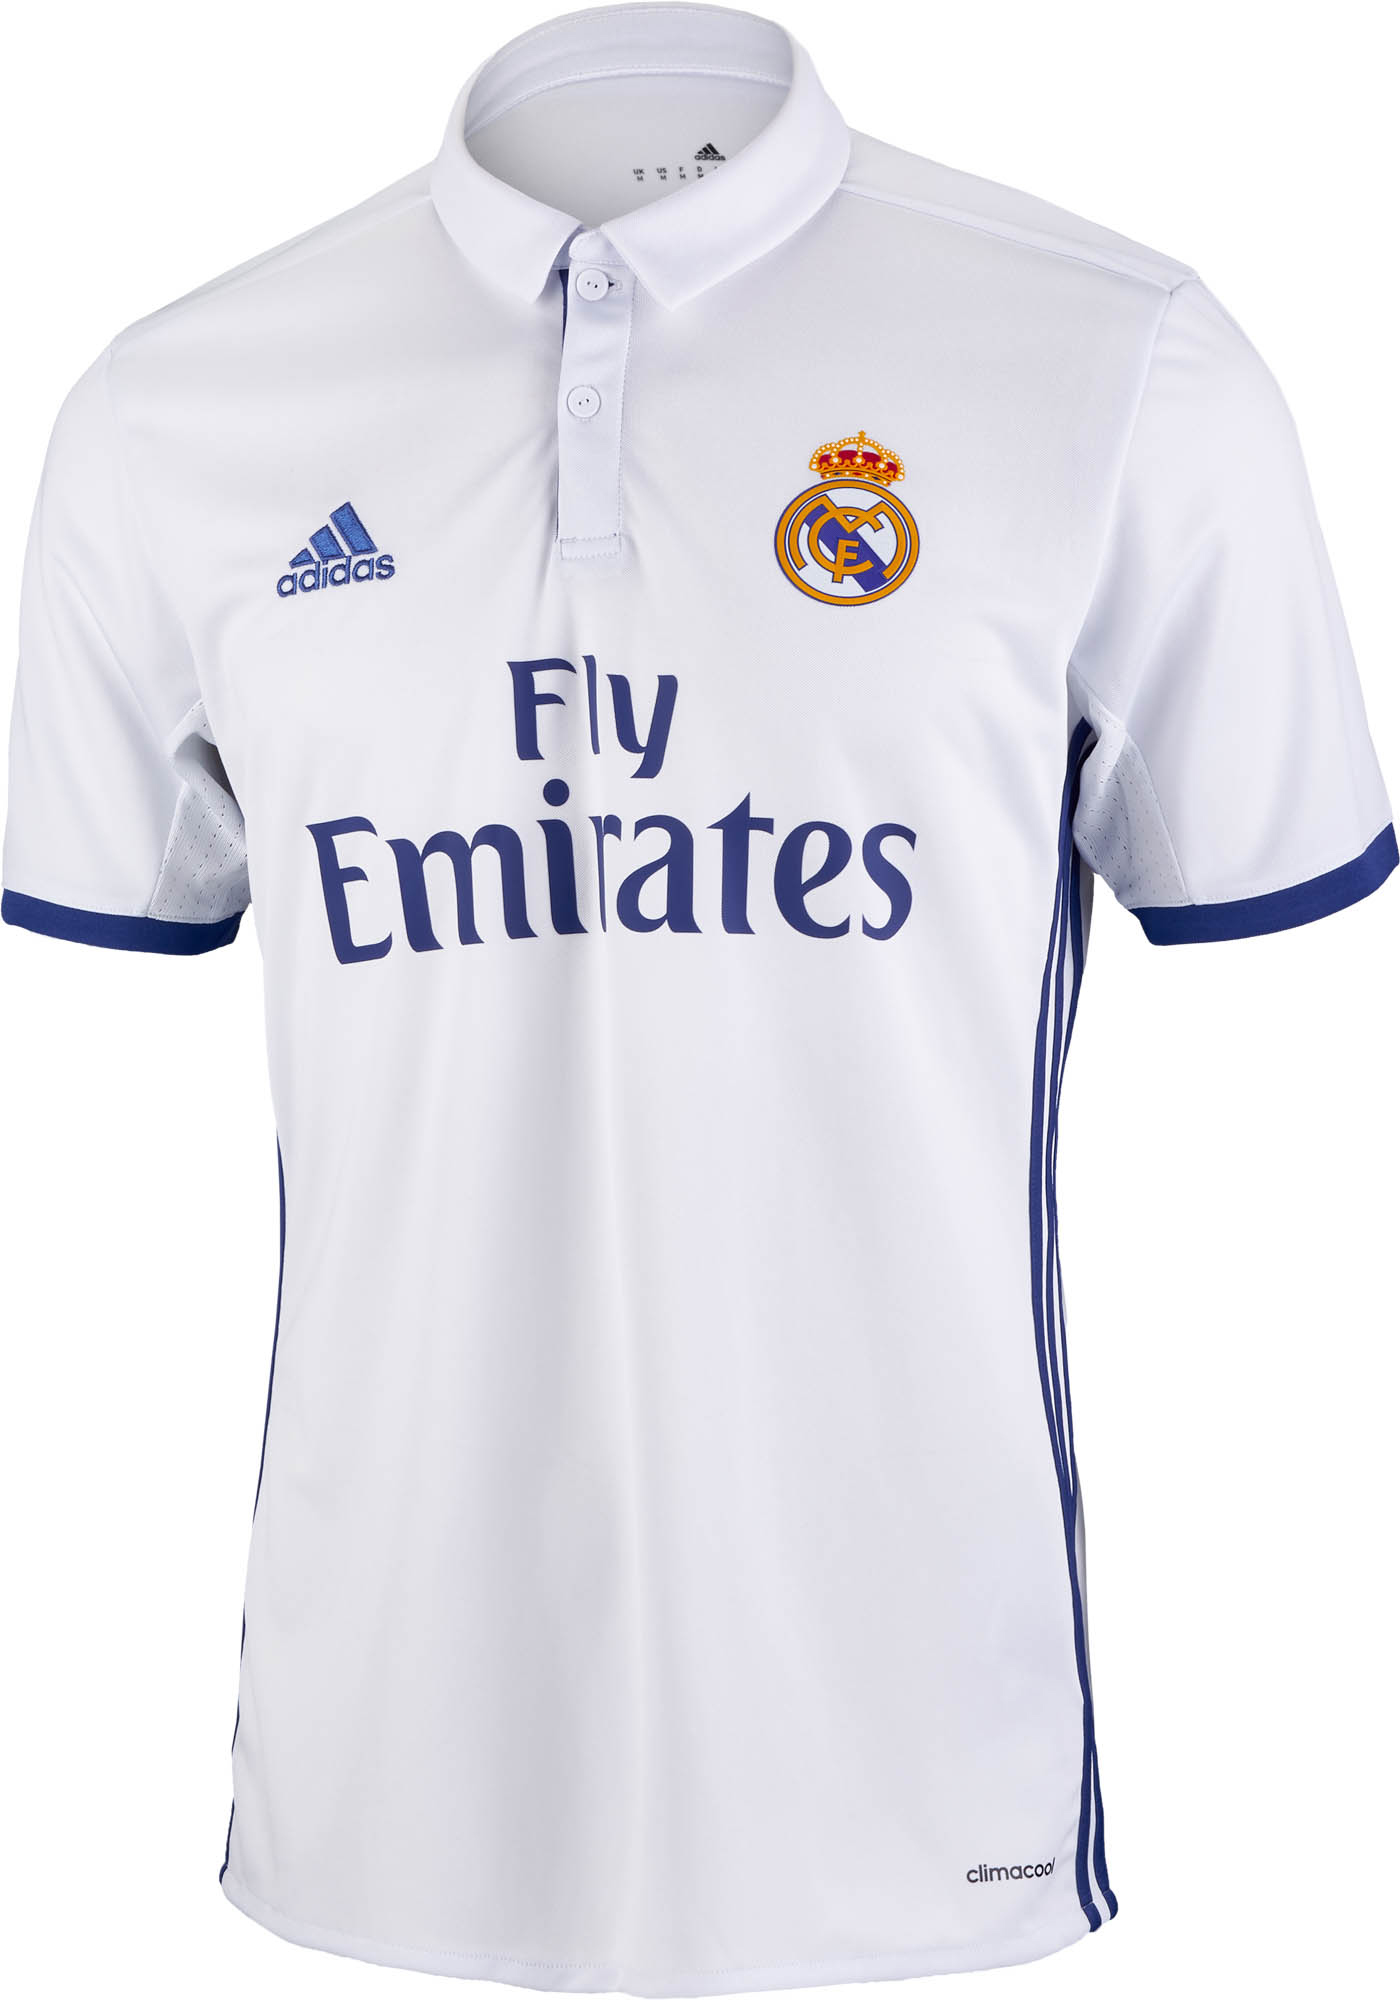 47ee5bf4d adidas Real Madrid Jersey - 2016 17 Real Madrid Home Jerseys